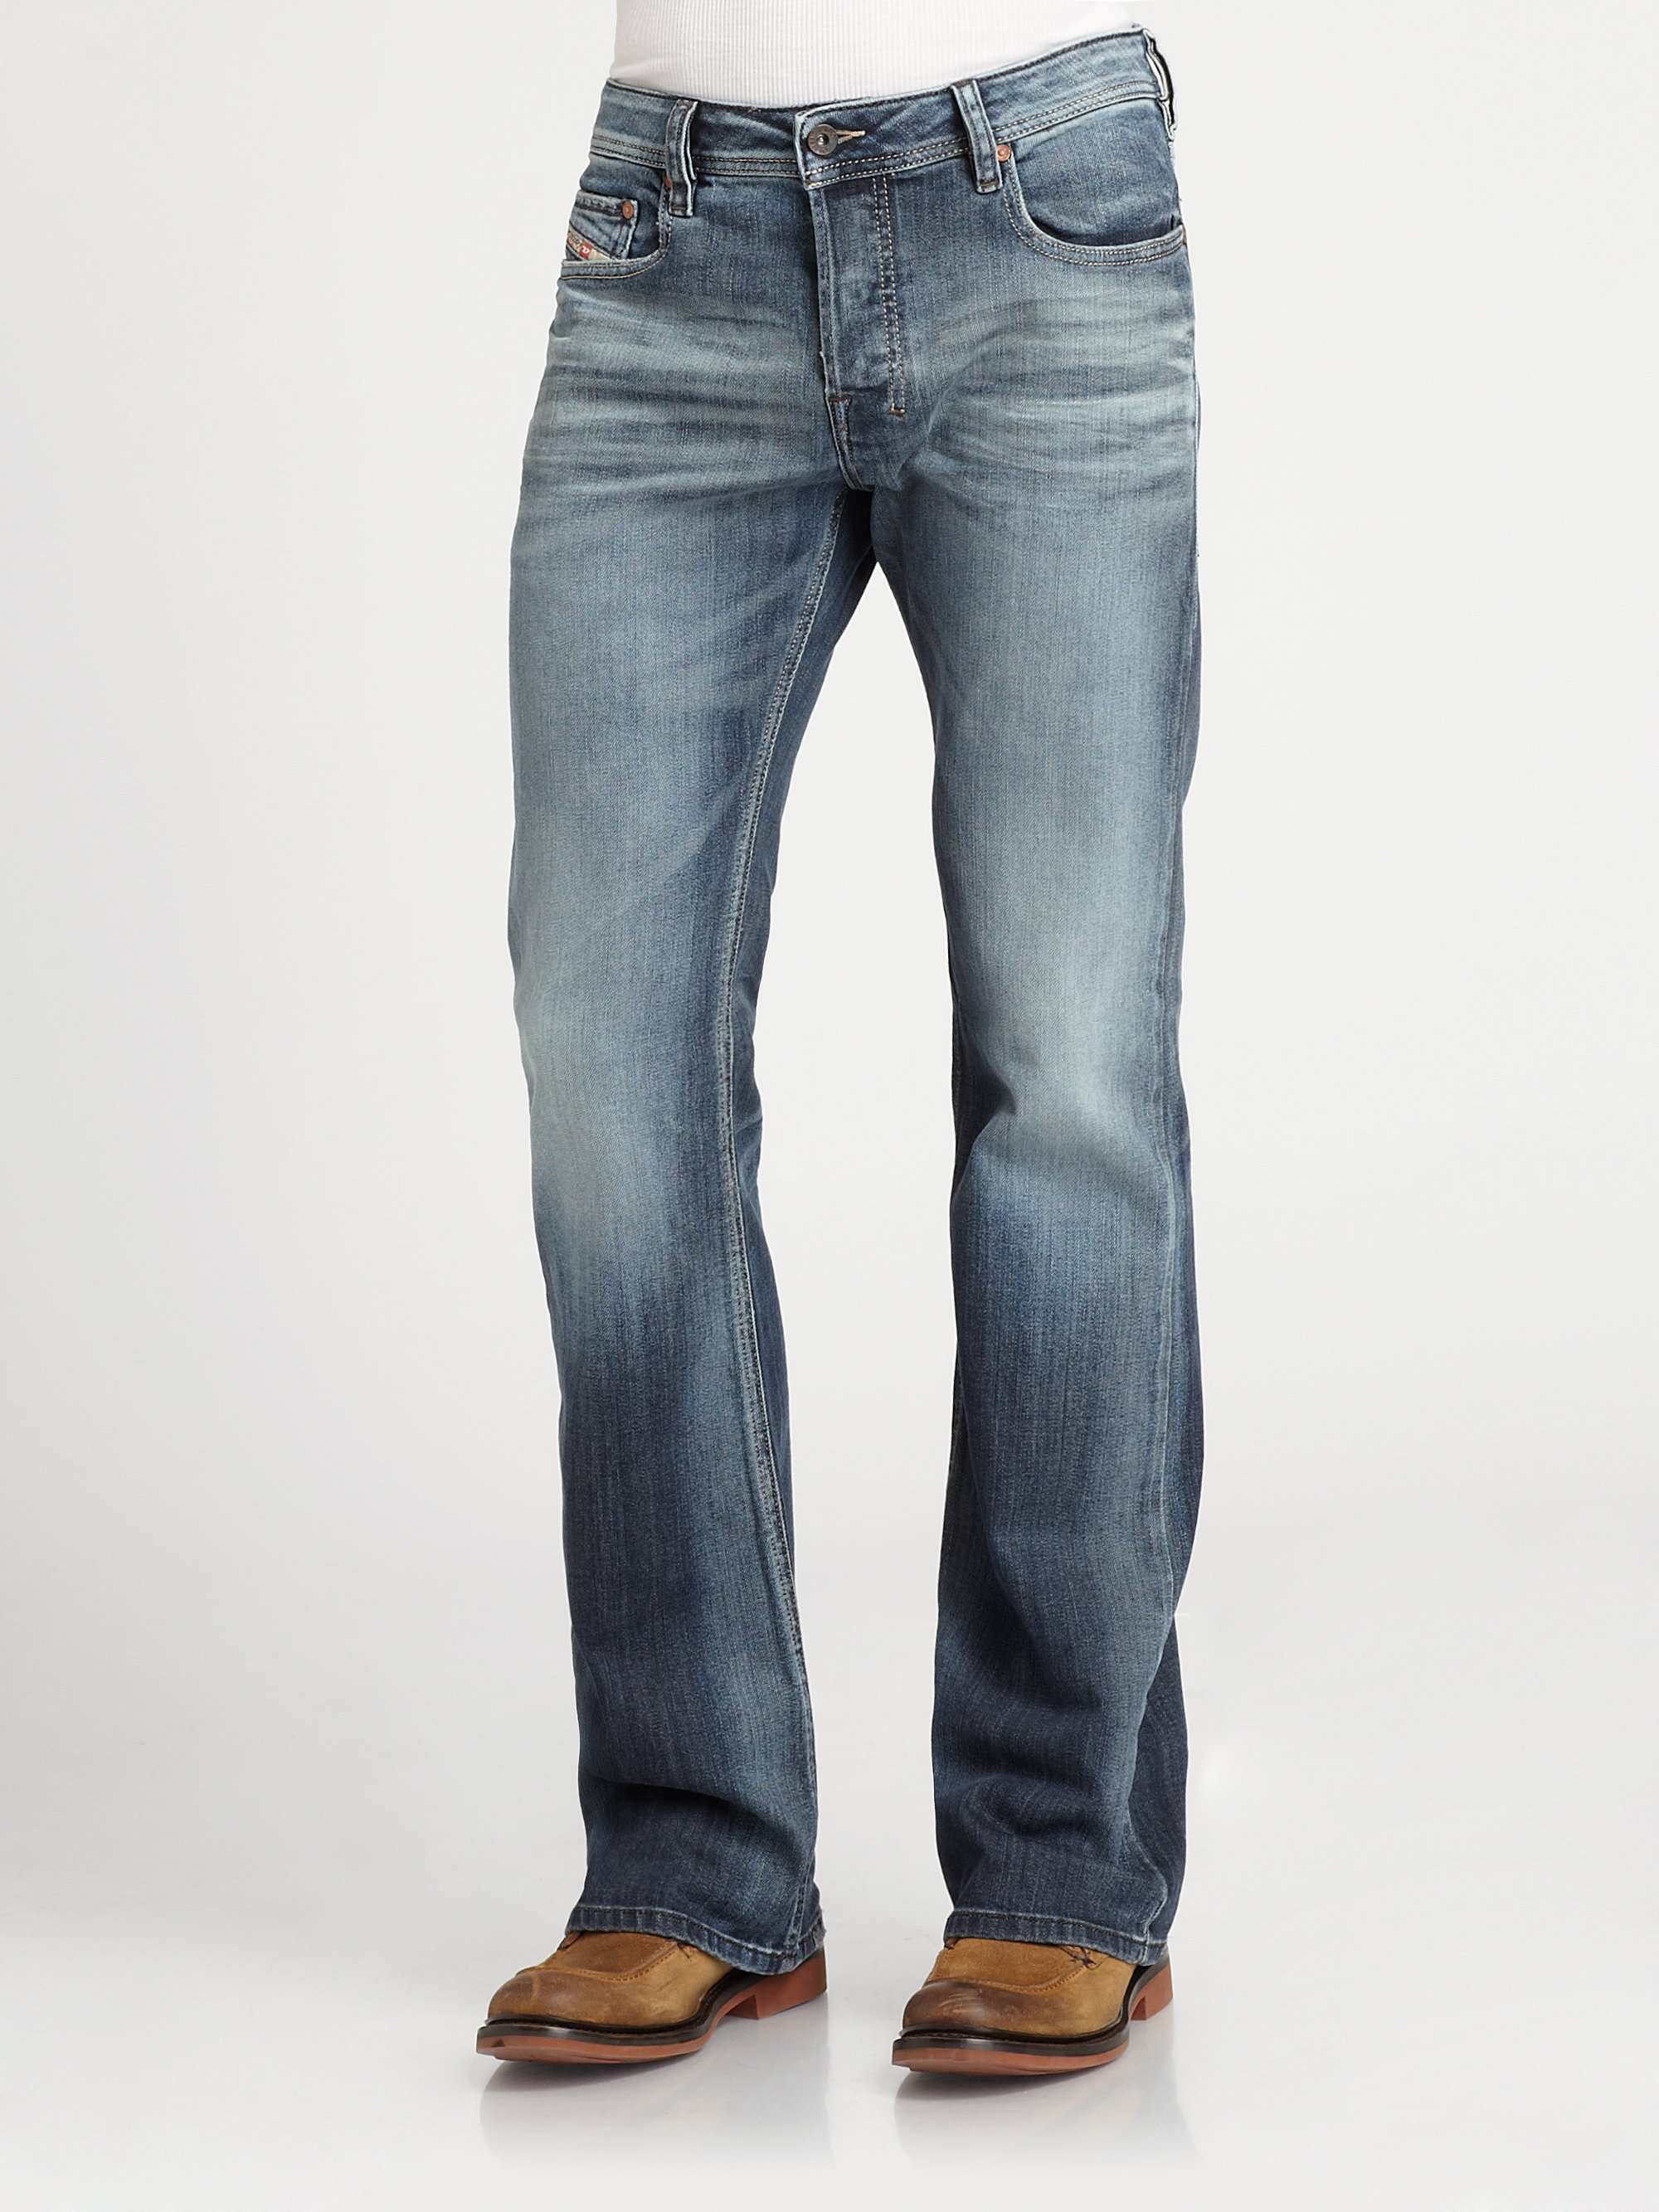 Rock And Republic Mens Jeans